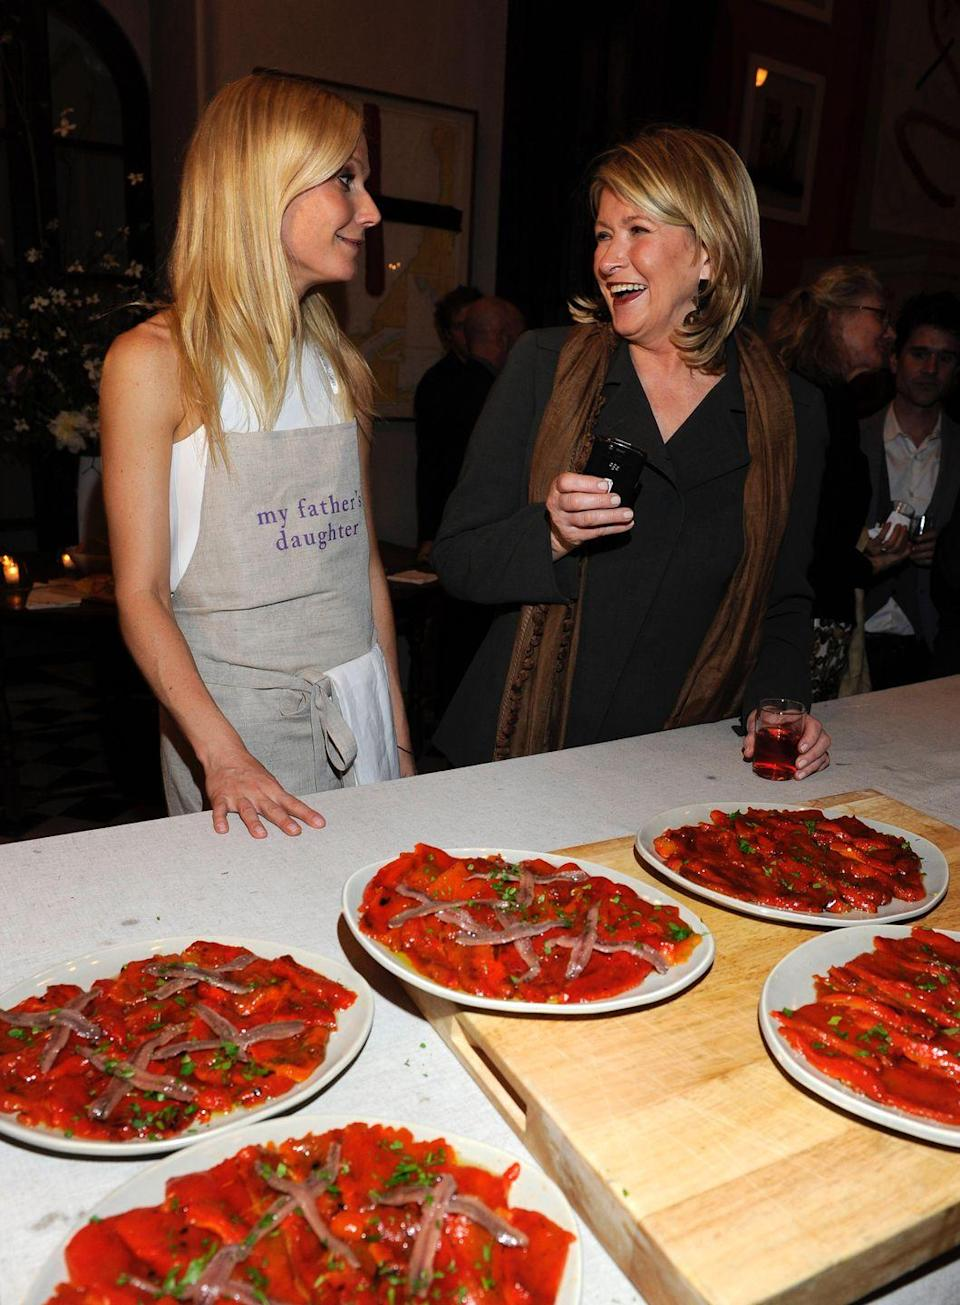 """<p>The drama didn't end there, with Martha posting a pie recipe spread called <a href=""""https://www.huffpost.com/entry/martha-stewart-gwyneth-paltrow_n_5966142"""" data-ylk=""""slk:""""Conscious Coupling"""""""" class=""""link rapid-noclick-resp"""">""""Conscious Coupling""""</a> in the November 2014 issue of <em>Martha Stewart Living — </em>a cheeky reference to Gwyneth's """"conscious uncoupling"""" announcement of her divorce from Chris Martin. A month later, Gwyneth posted her own recipe called <a href=""""https://www.usmagazine.com/celebrity-news/news/gwyneth-paltrow-shares-jailbird-cake-recipe-after-martha-stewart-dig-20142011/"""" rel=""""nofollow noopener"""" target=""""_blank"""" data-ylk=""""slk:&quot;jailbird cake,&quot;"""" class=""""link rapid-noclick-resp"""">""""jailbird cake,""""</a> a dig at Martha's time in prison for fraud charges back in 2004.</p><p><strong>RELATED: </strong><a href=""""https://www.goodhousekeeping.com/life/entertainment/g30646031/gwyneth-paltrow-goop-controversial-moments/"""" rel=""""nofollow noopener"""" target=""""_blank"""" data-ylk=""""slk:Gwyneth Paltrow's Most Controversial Goop Moments Over the Years"""" class=""""link rapid-noclick-resp"""">Gwyneth Paltrow's Most Controversial Goop Moments Over the Years</a> </p>"""